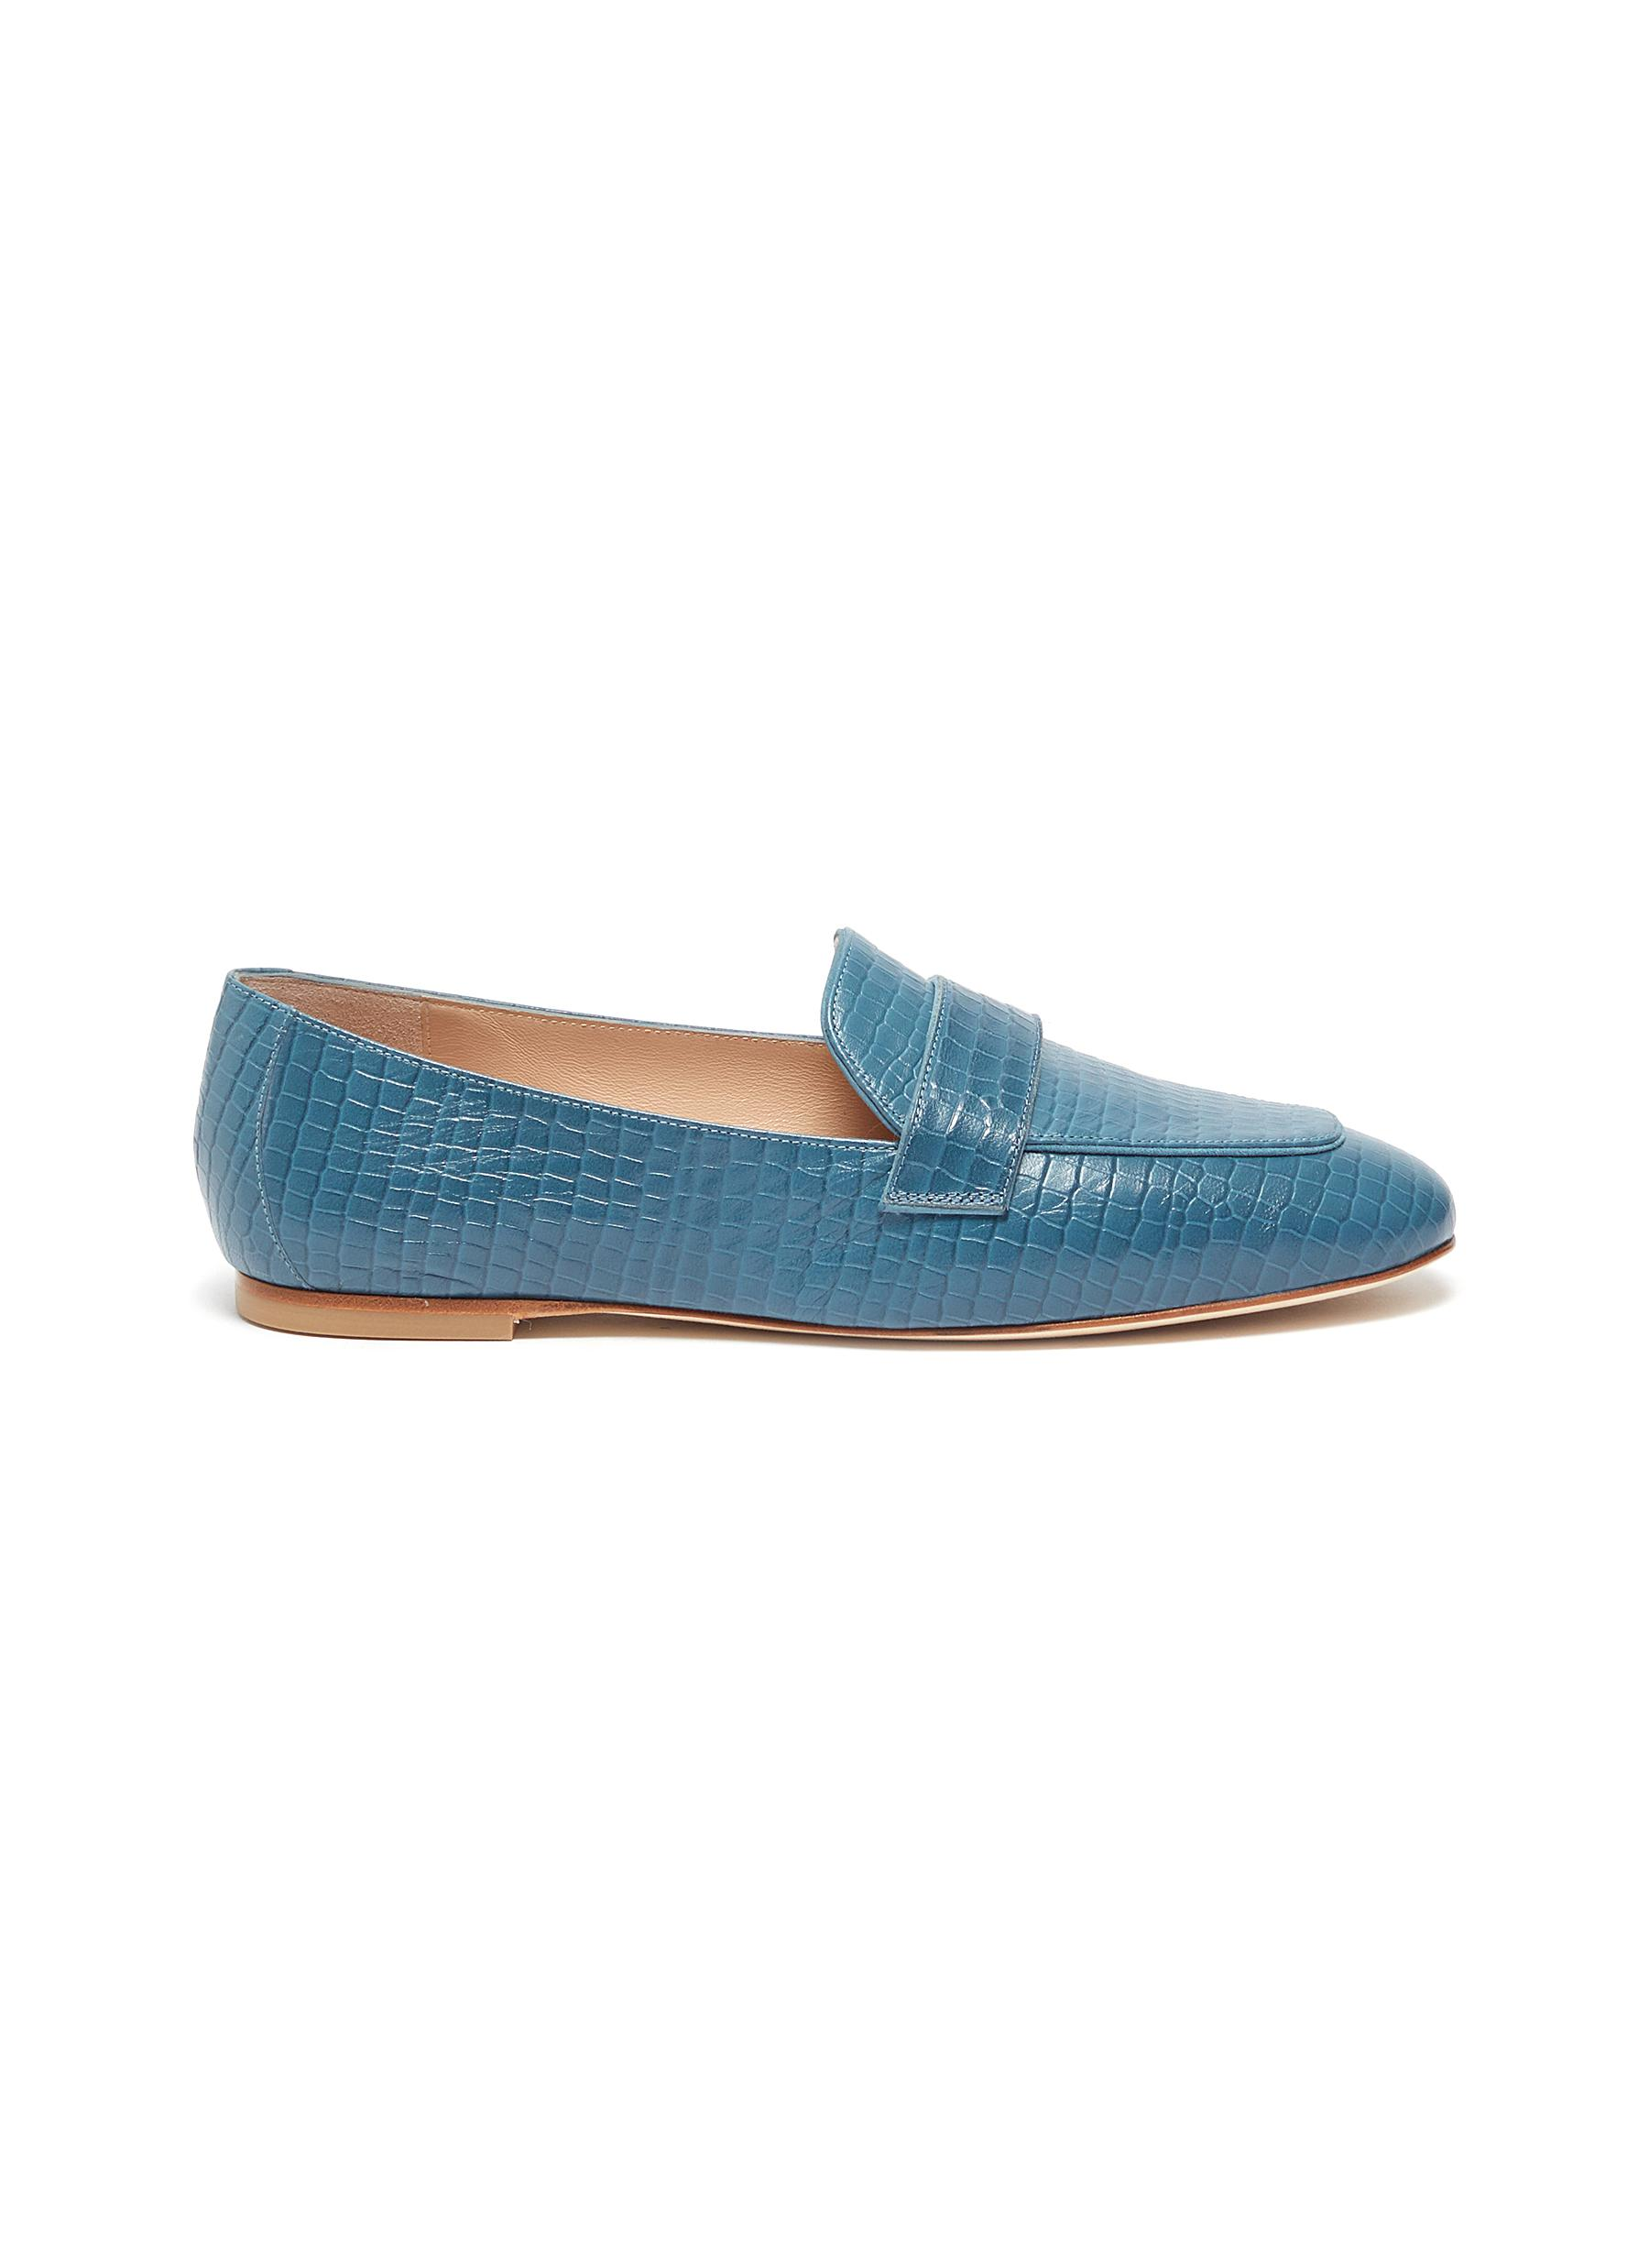 Stuart Weitzman Flats Payson croc embossed leather loafers